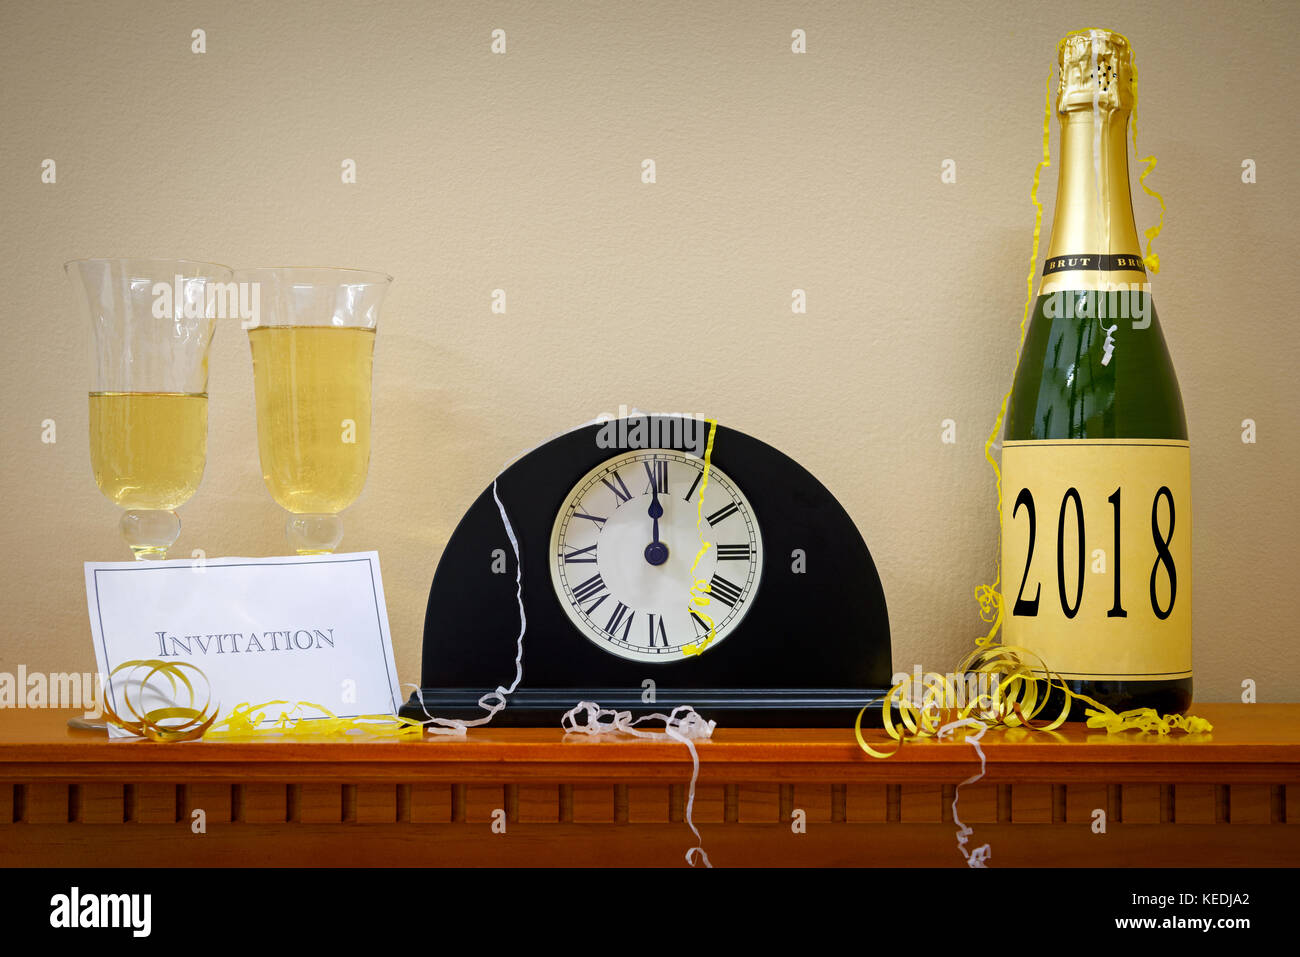 a clock showing midnight at new year with a bottle of champagne labelled 2018 glasses and invitation surrounded by streamers